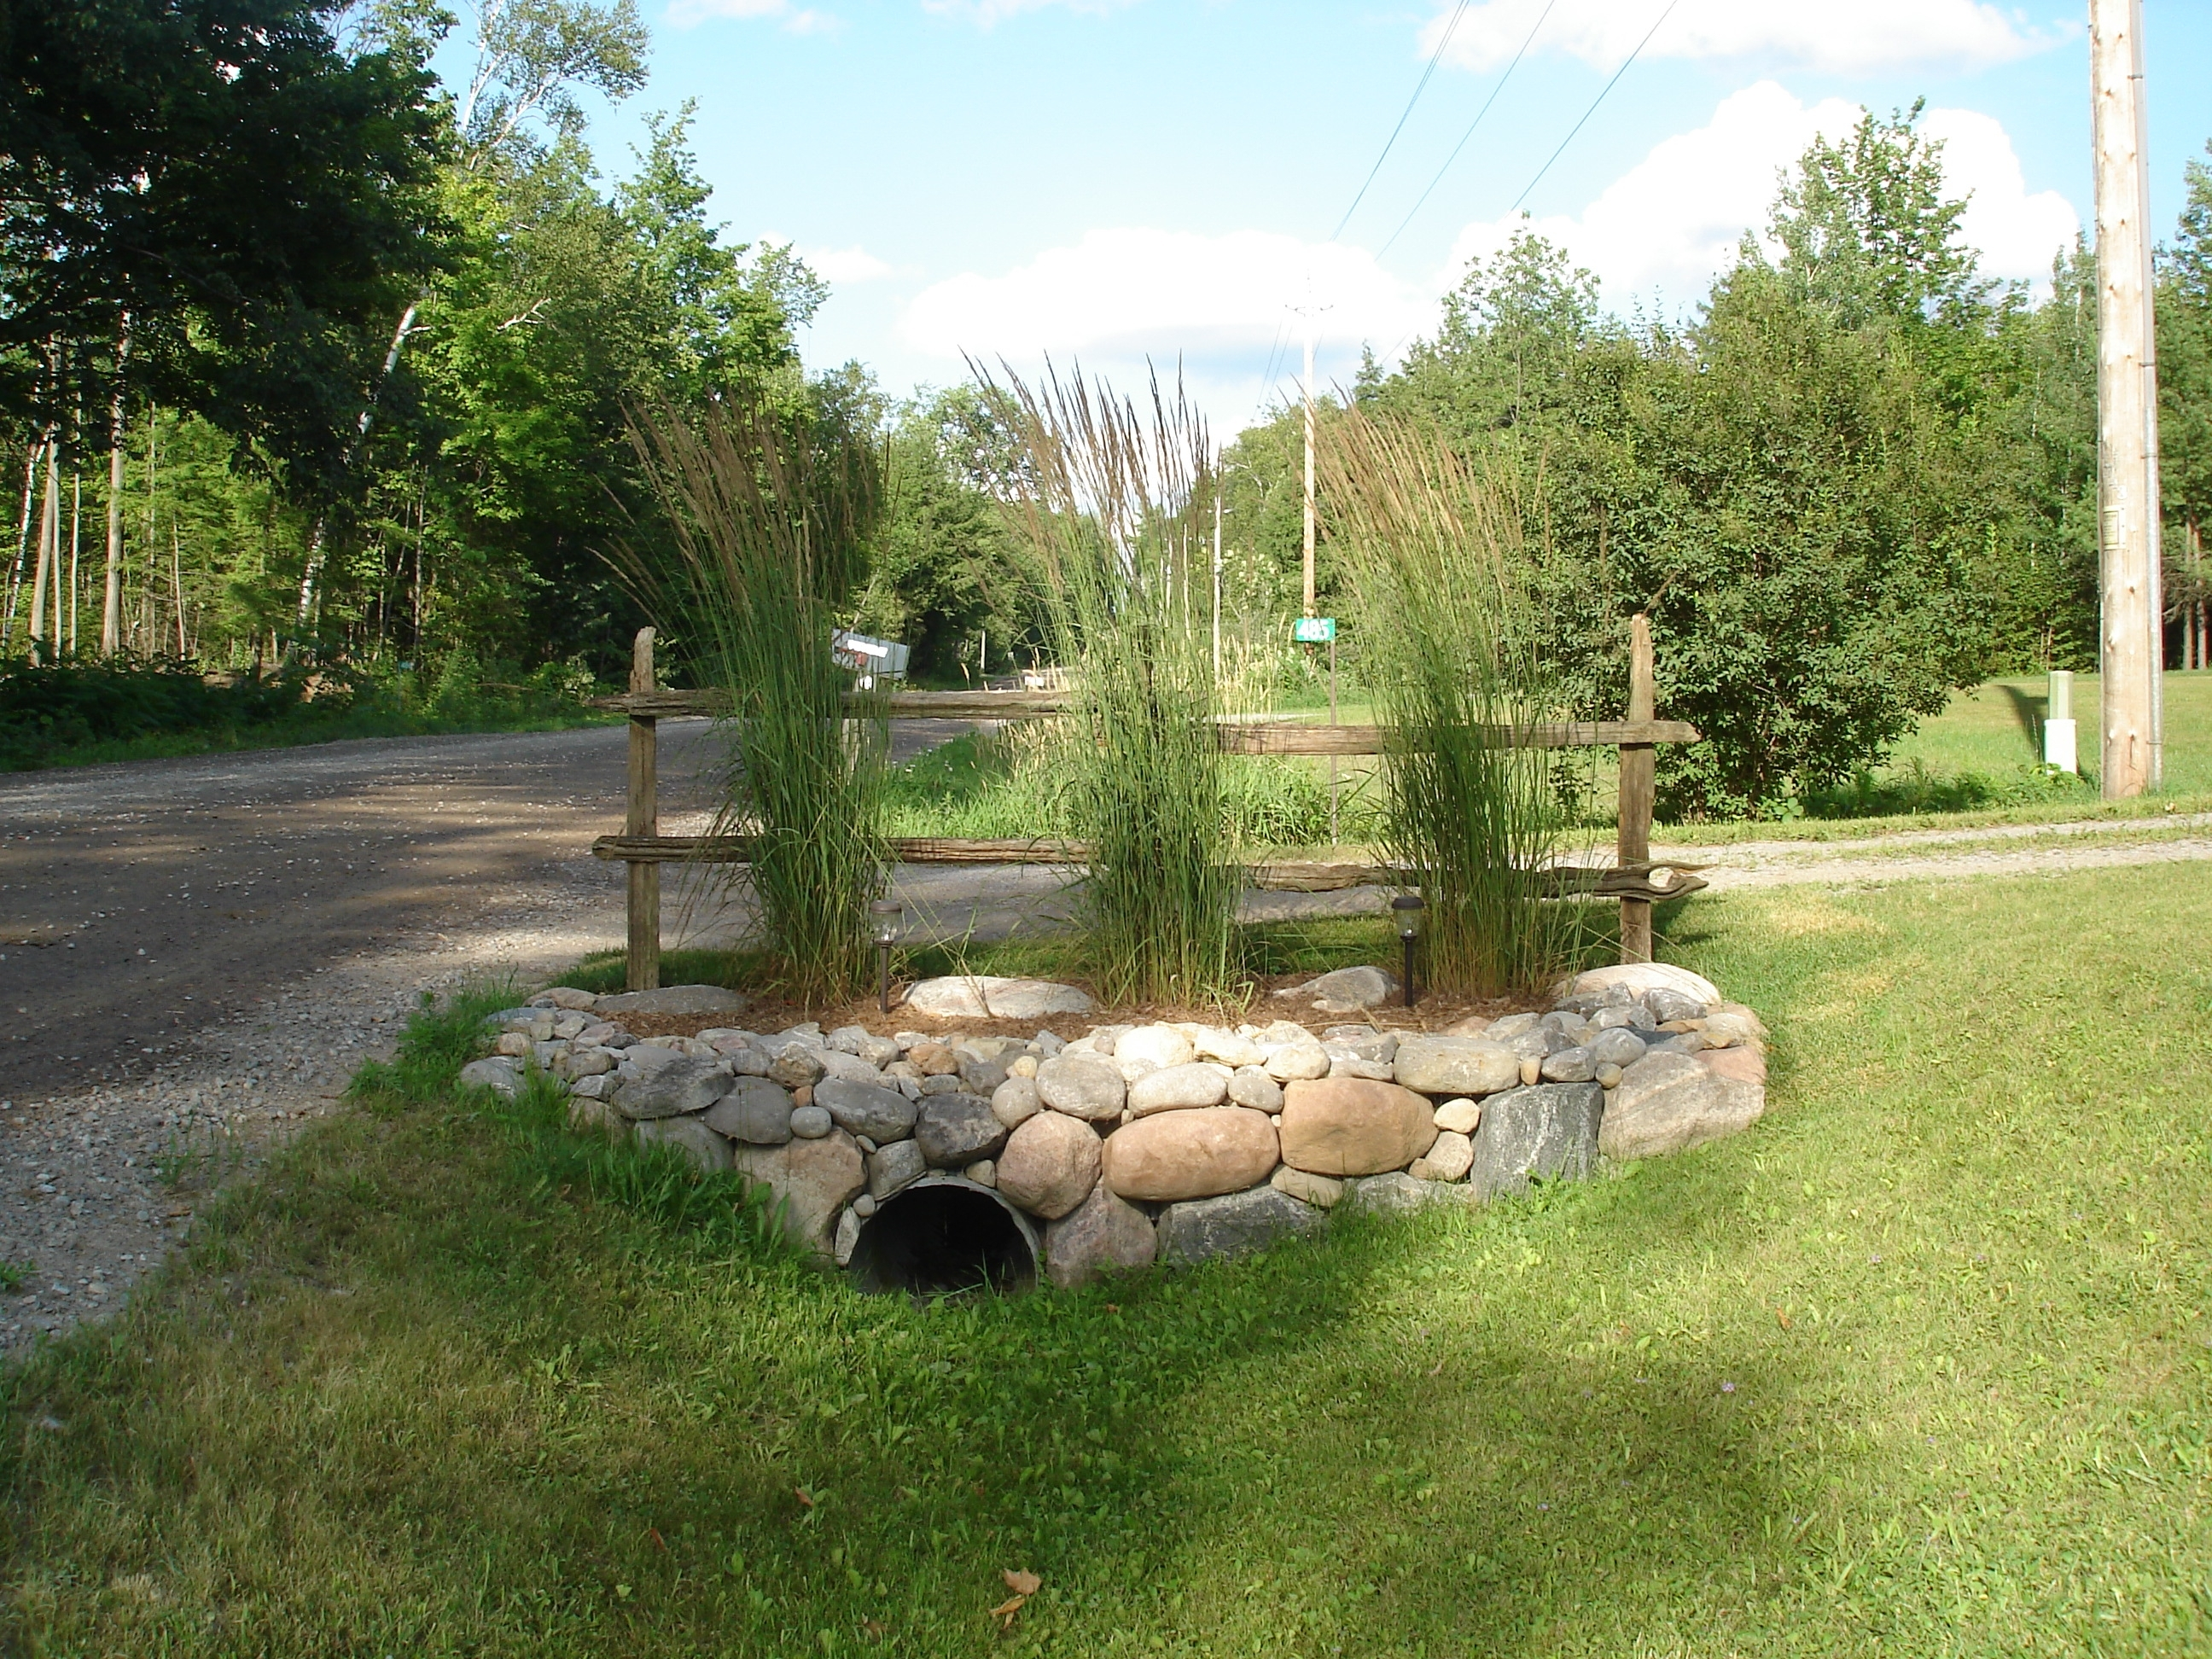 Image of: Drainage Pipe Driveway Landscaping Having A Culvert Or Drainage In Drainage Ditch Landscaping Ideas Natural Drainage Ditch Landscaping Ideas